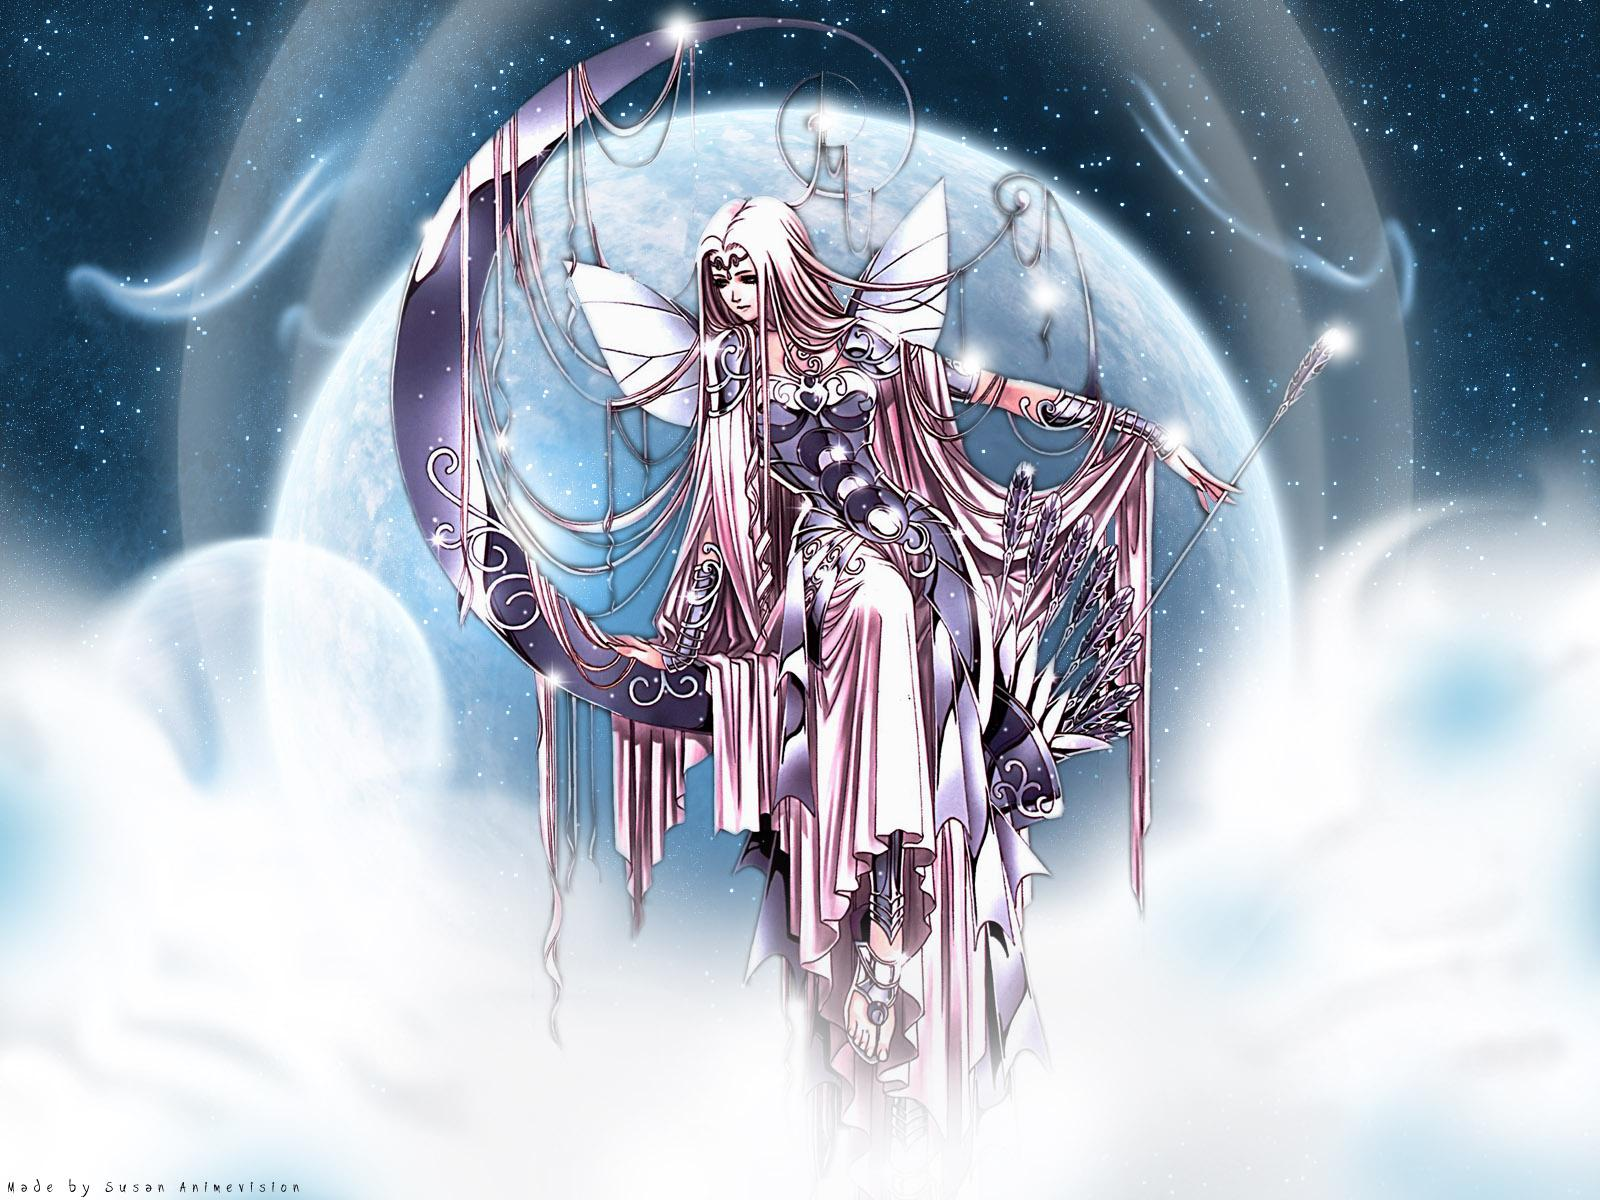 Download Saint Seiya Wallpaper: [--Infinity--] (1600x1200) - Minitokyo